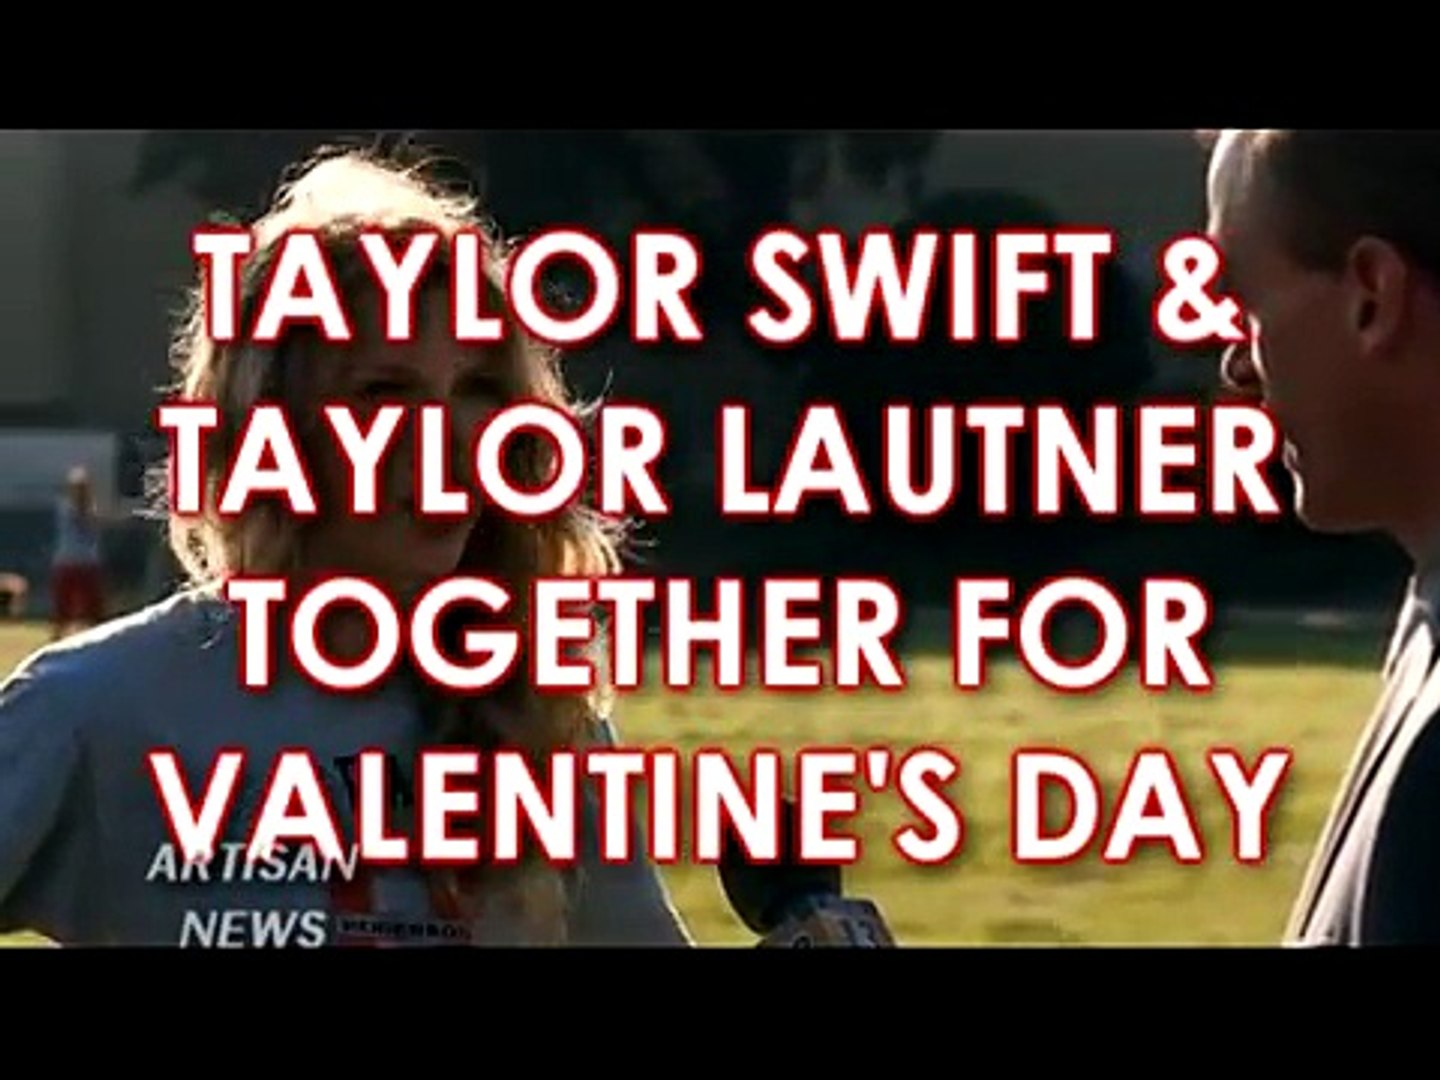 TAYLOR LAUTNER & TAYLOR SWIFT TOGETHER FOR VALENTINE'S DAY